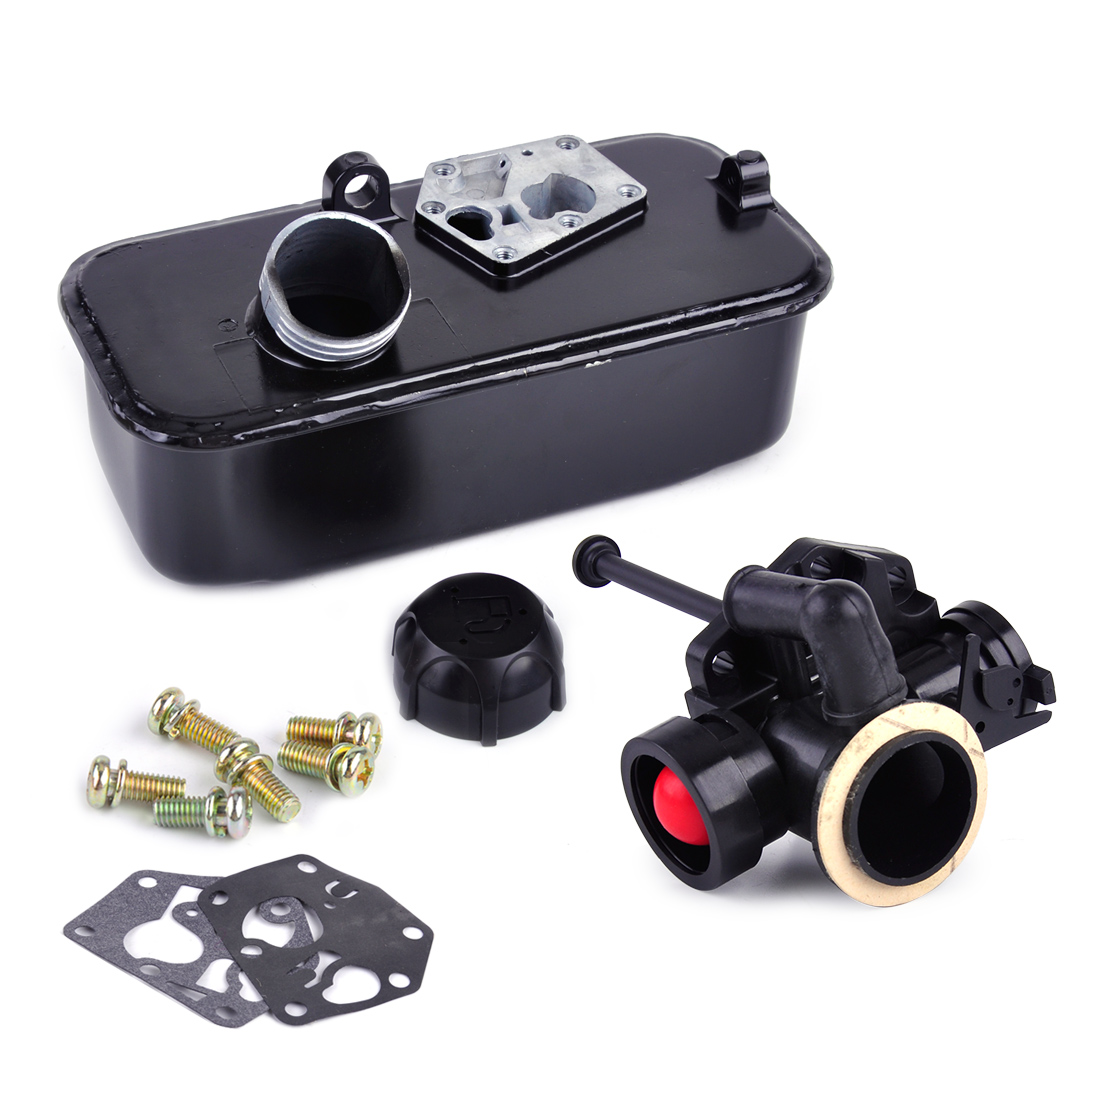 LETAOSK Mower Fuel Gas Tank Carburetor Assembly fit for Briggs & Stratton Replaces Engines Part 494406 498809A 498809LETAOSK Mower Fuel Gas Tank Carburetor Assembly fit for Briggs & Stratton Replaces Engines Part 494406 498809A 498809